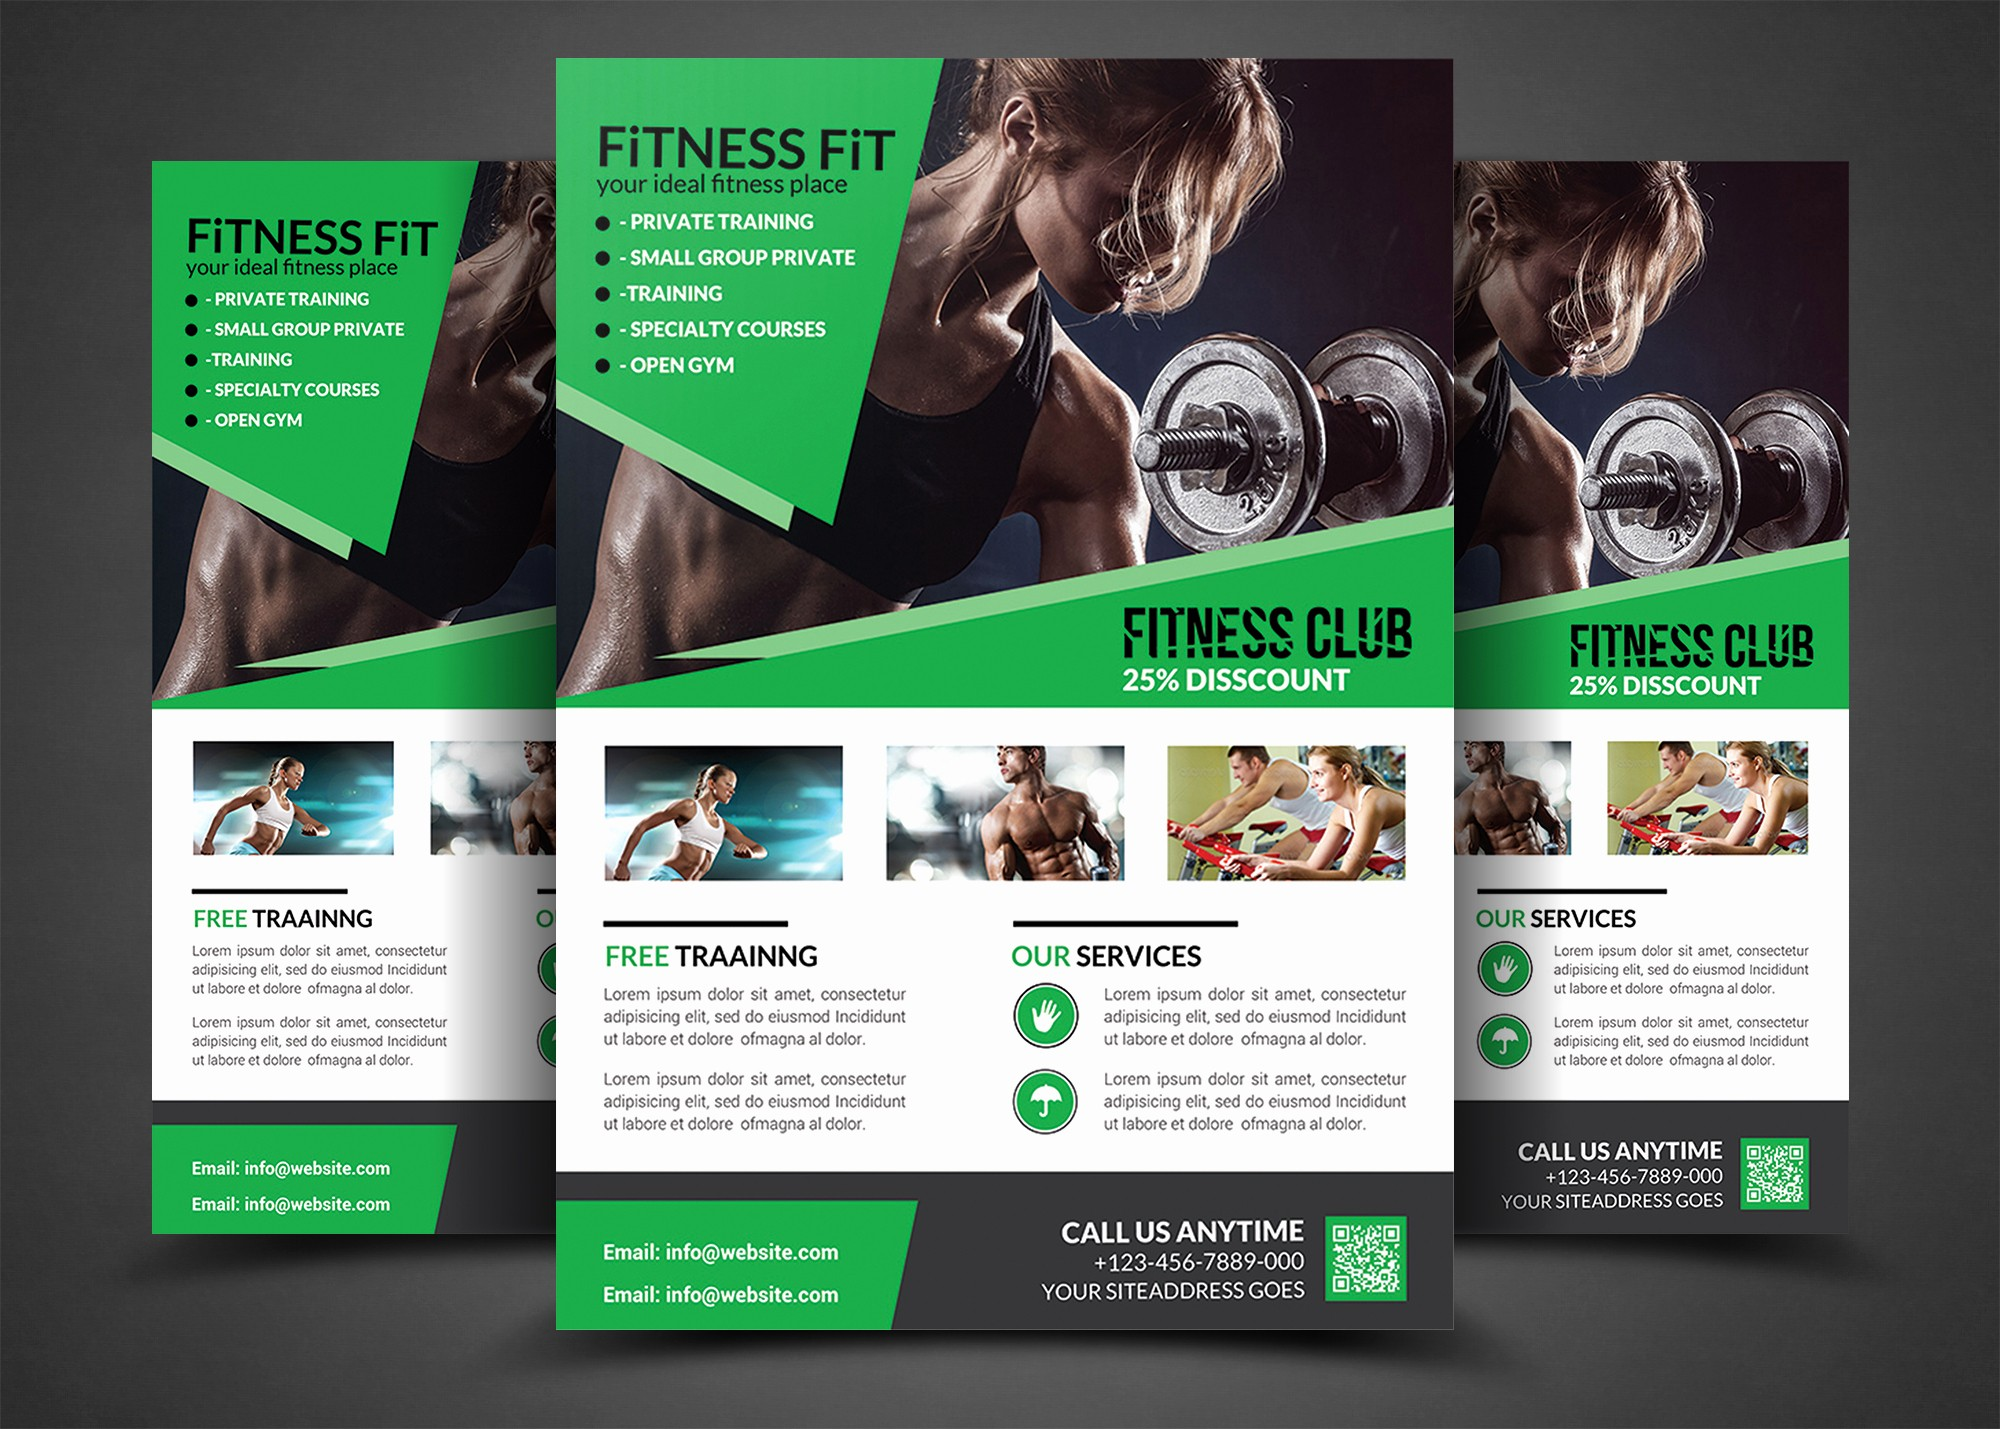 Templates for Flyers and Brochures Awesome Fitness Flyer Gym Flyer Templates Flyer Templates On